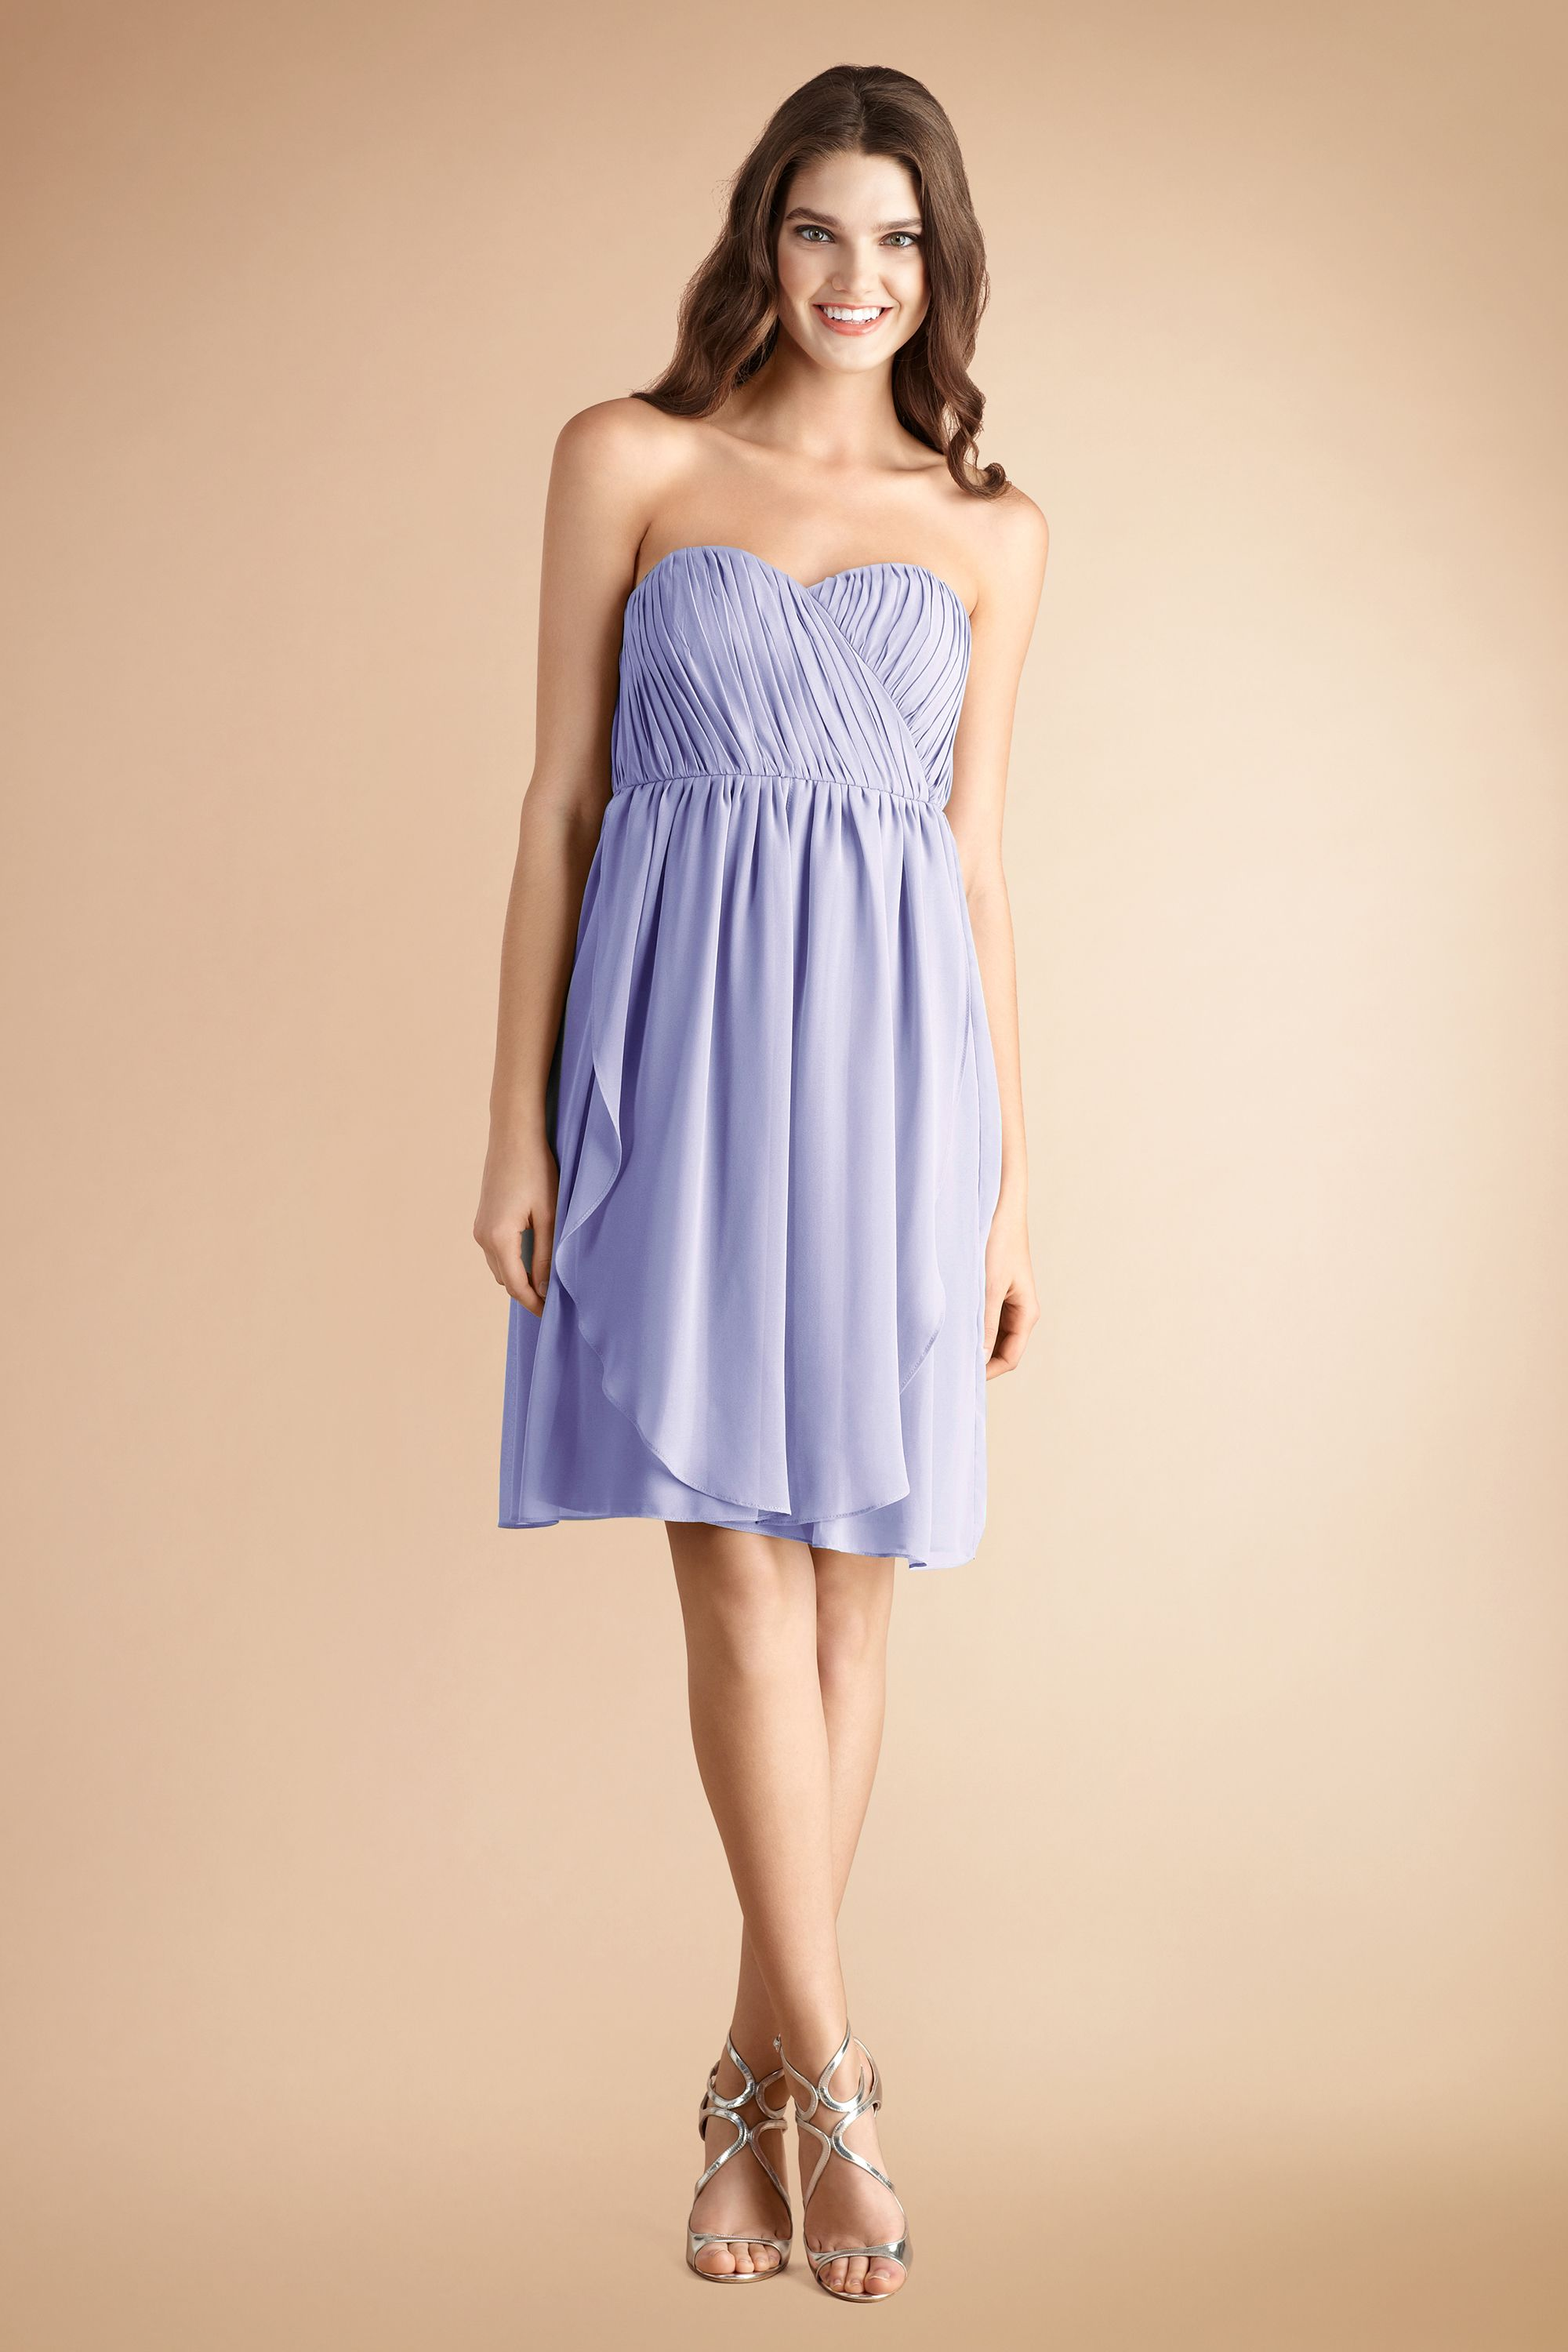 There are over 8 ways to tie our Blaire dress! We love it in our new color #Iris! #Wedding